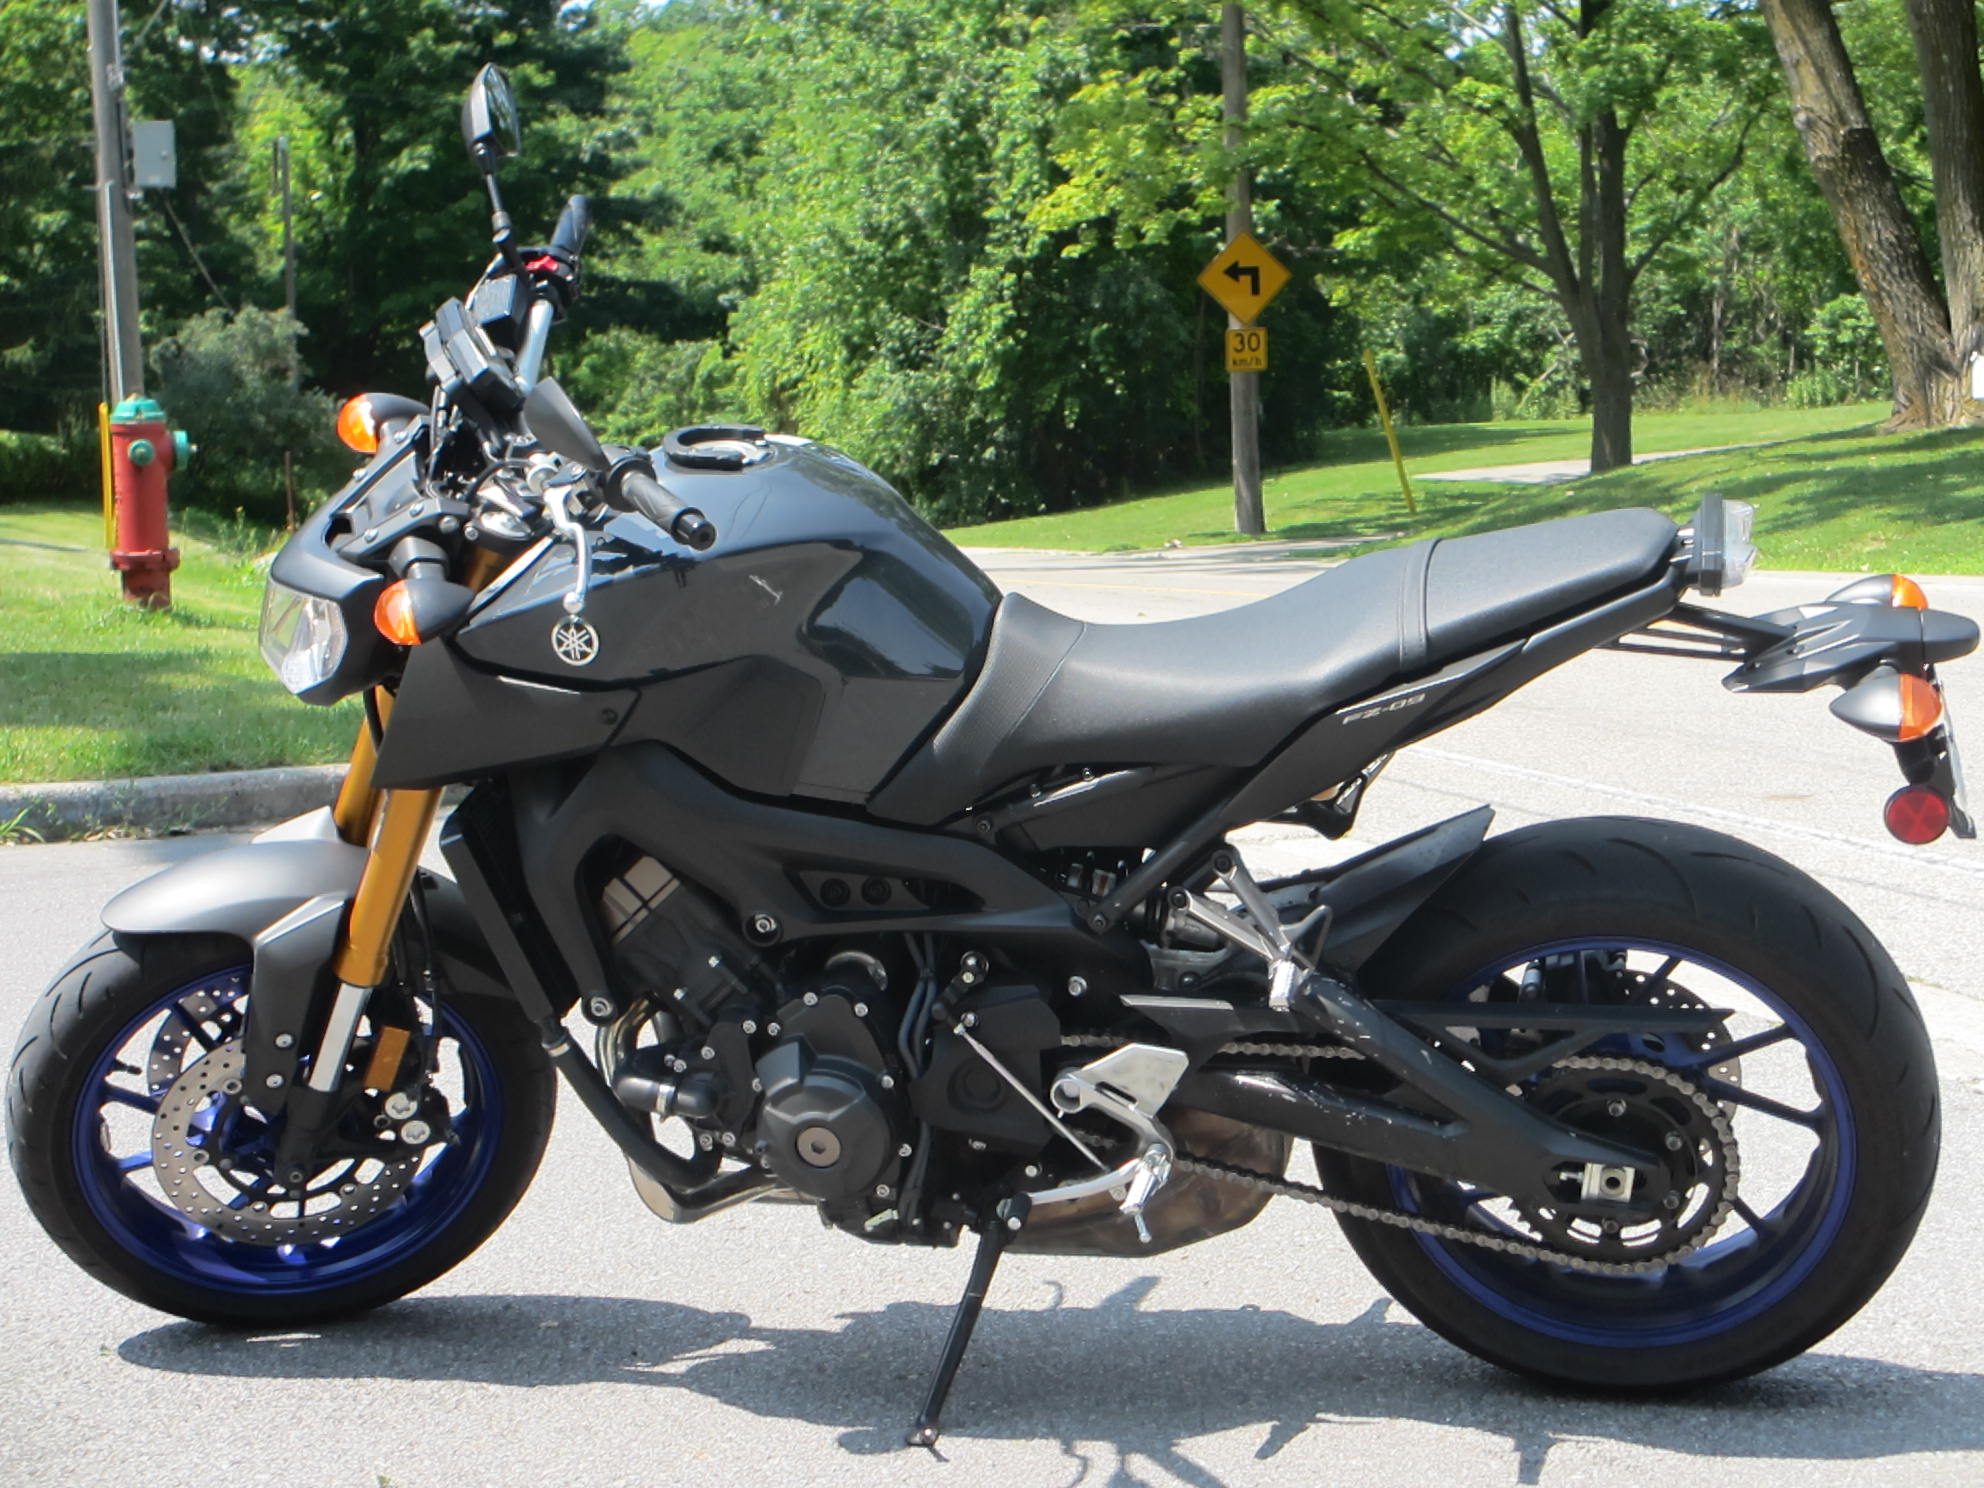 Yamaha fz 09 review eatsleepride for Yamaha fz 09 horsepower